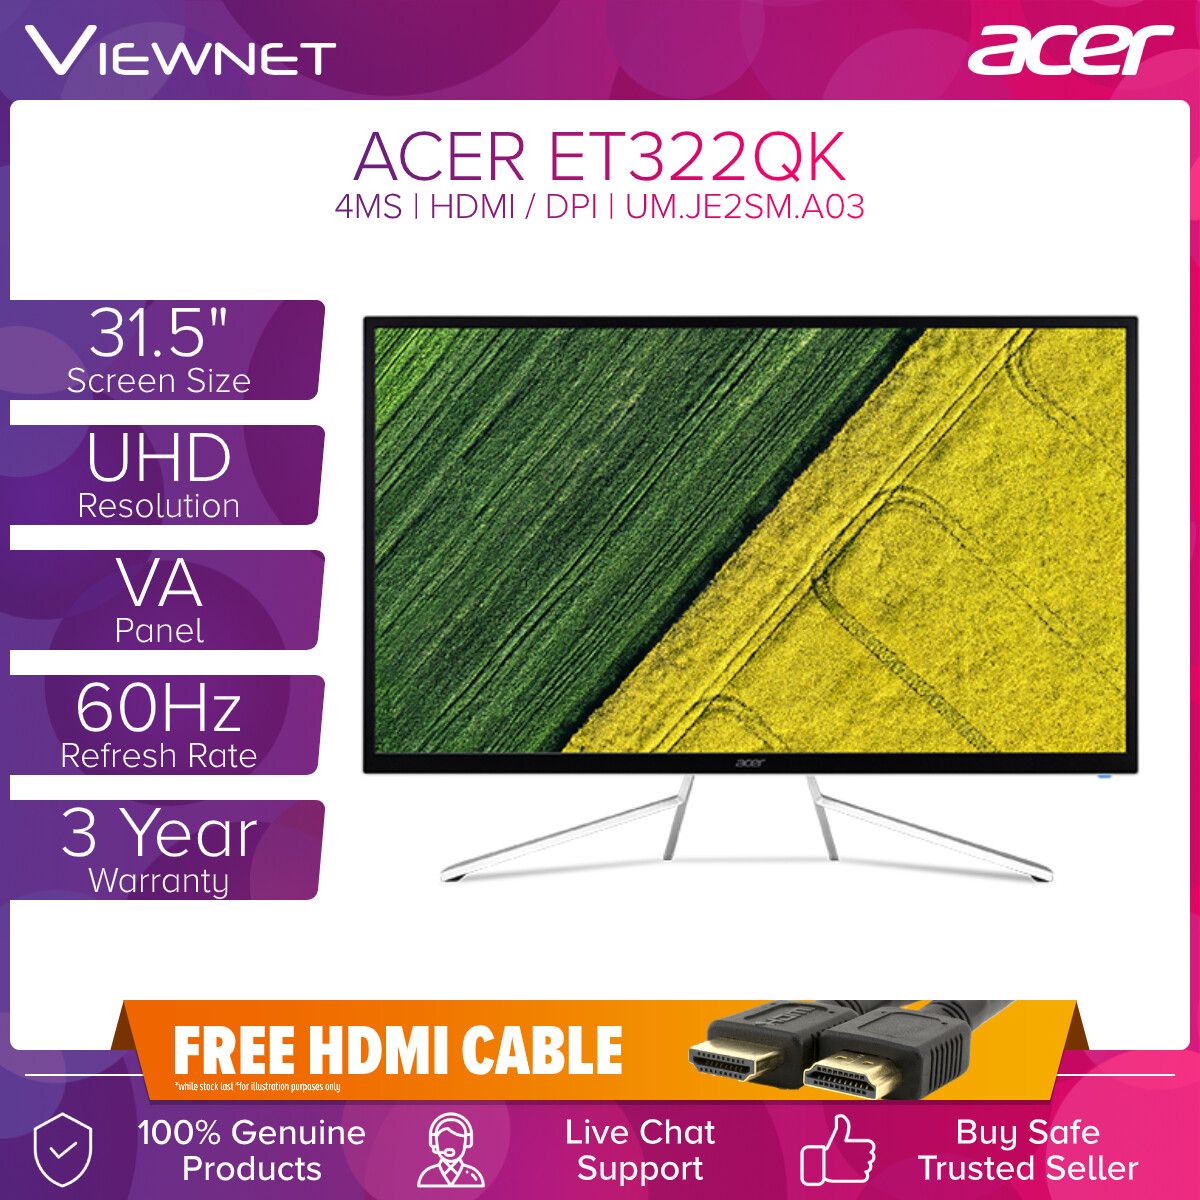 "Acer ET322QK 31.5"" VA UHD 60Hz 4ms 4K LED Monitor (UM.JE2SM.A03) with HDMI & DisplayPort, Built-in Speakers, VESA Compatible"